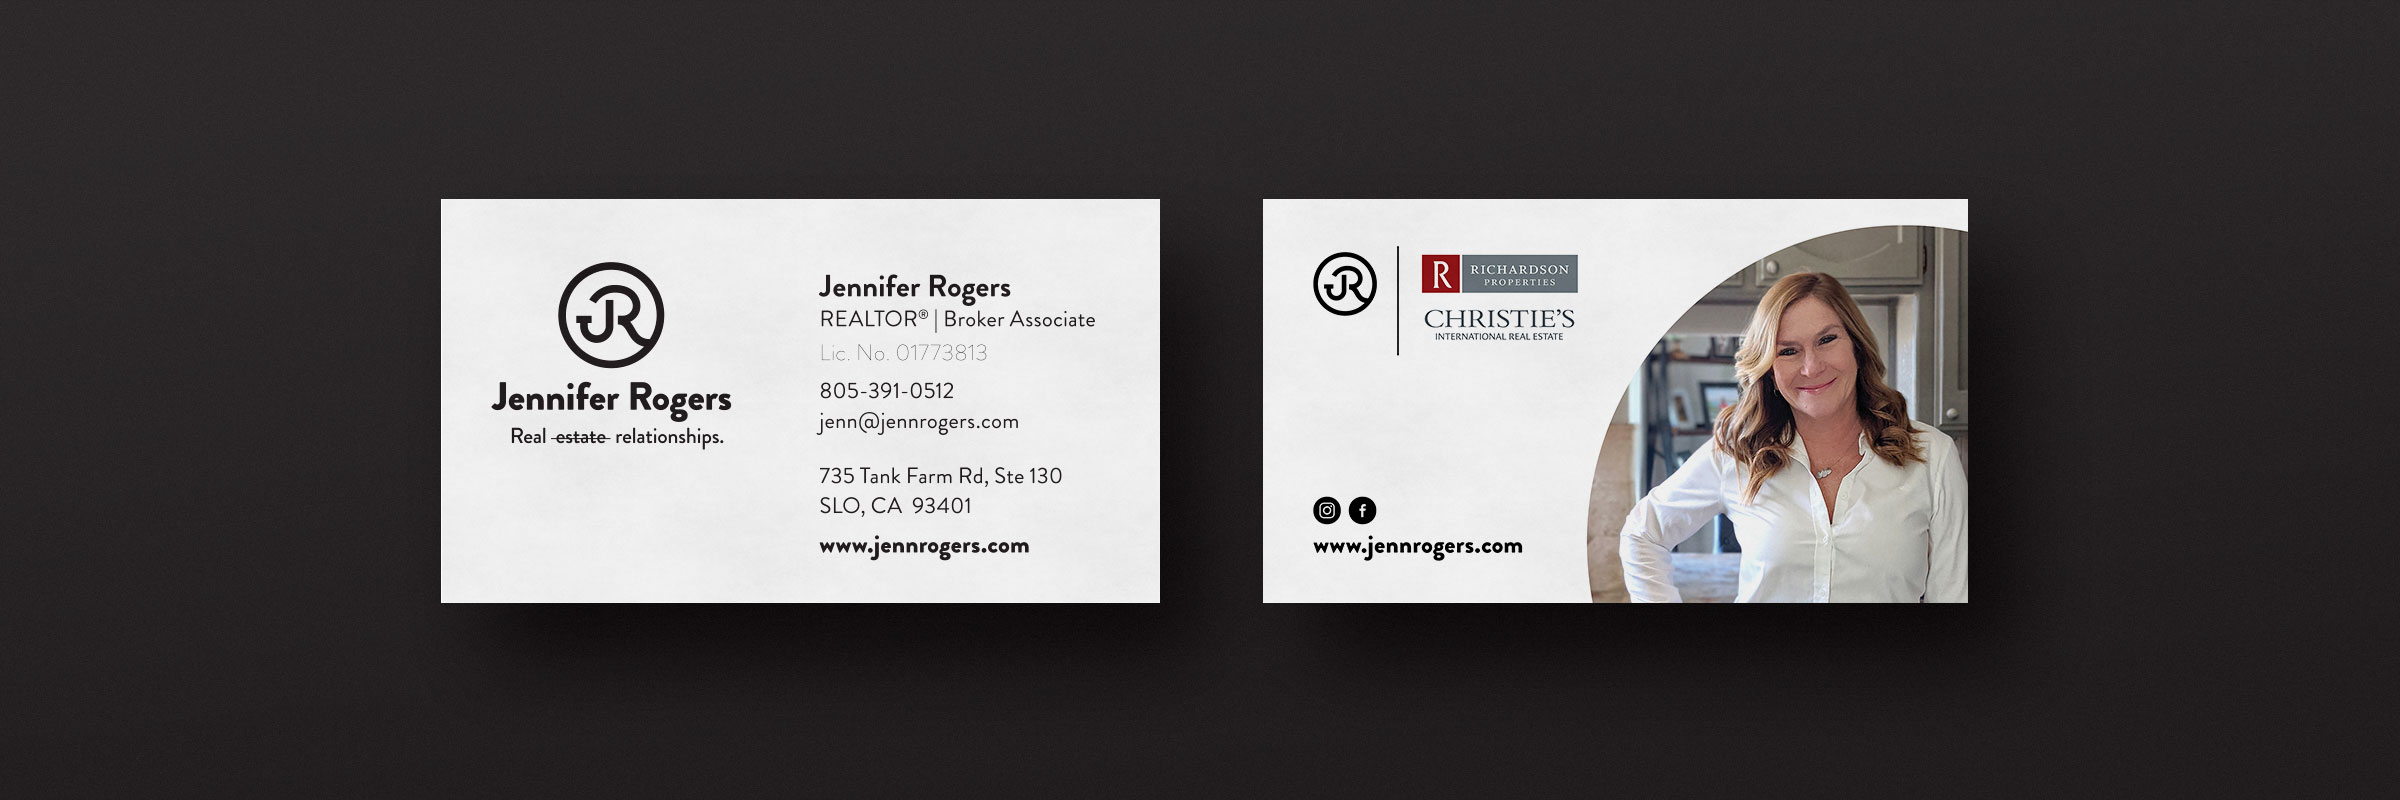 Jenn-Rogers-Branding-06-business-cards-rev